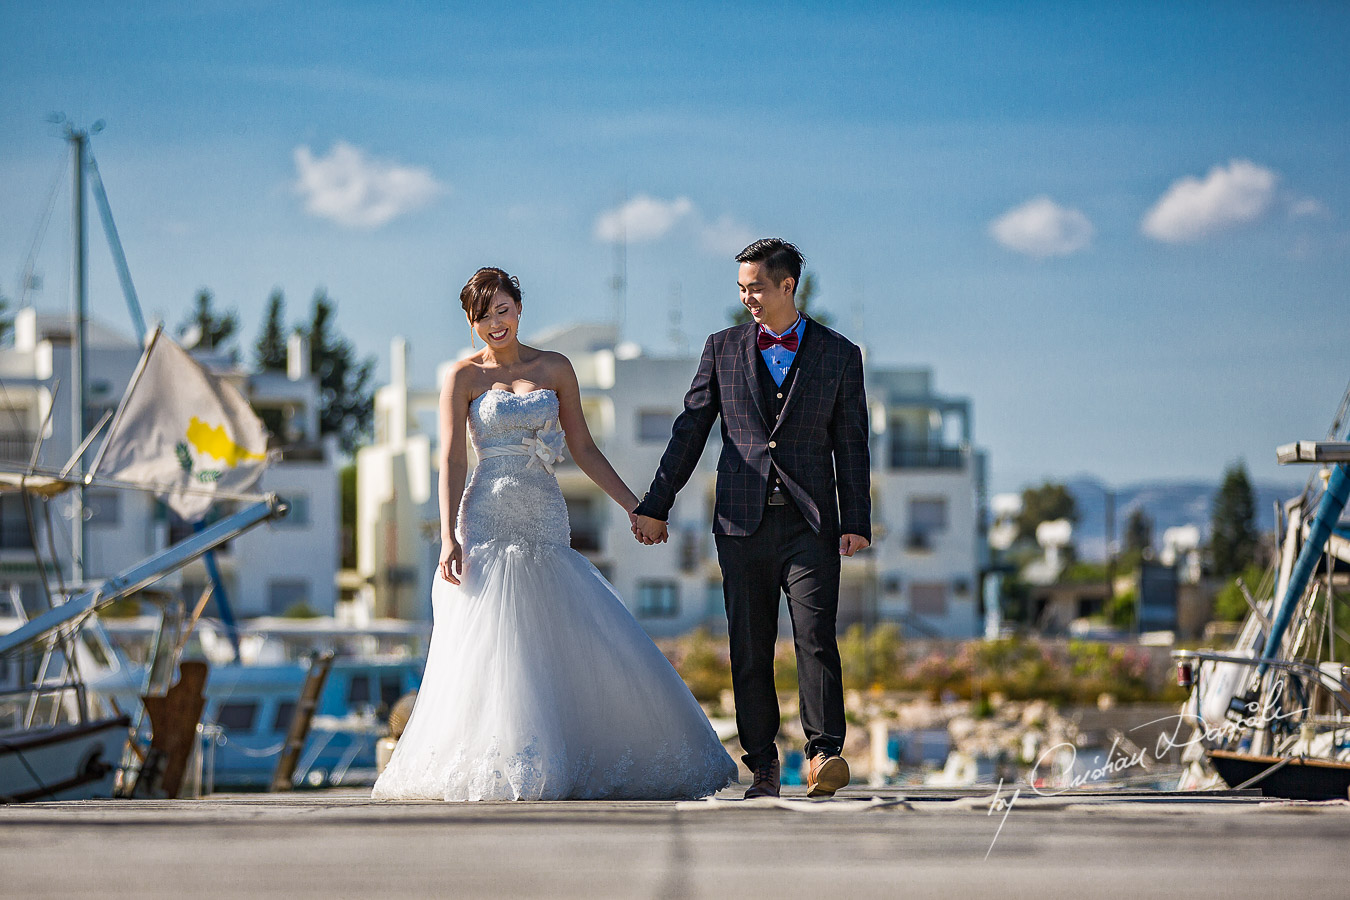 Pre-wedding Photography in Cyprus - 06